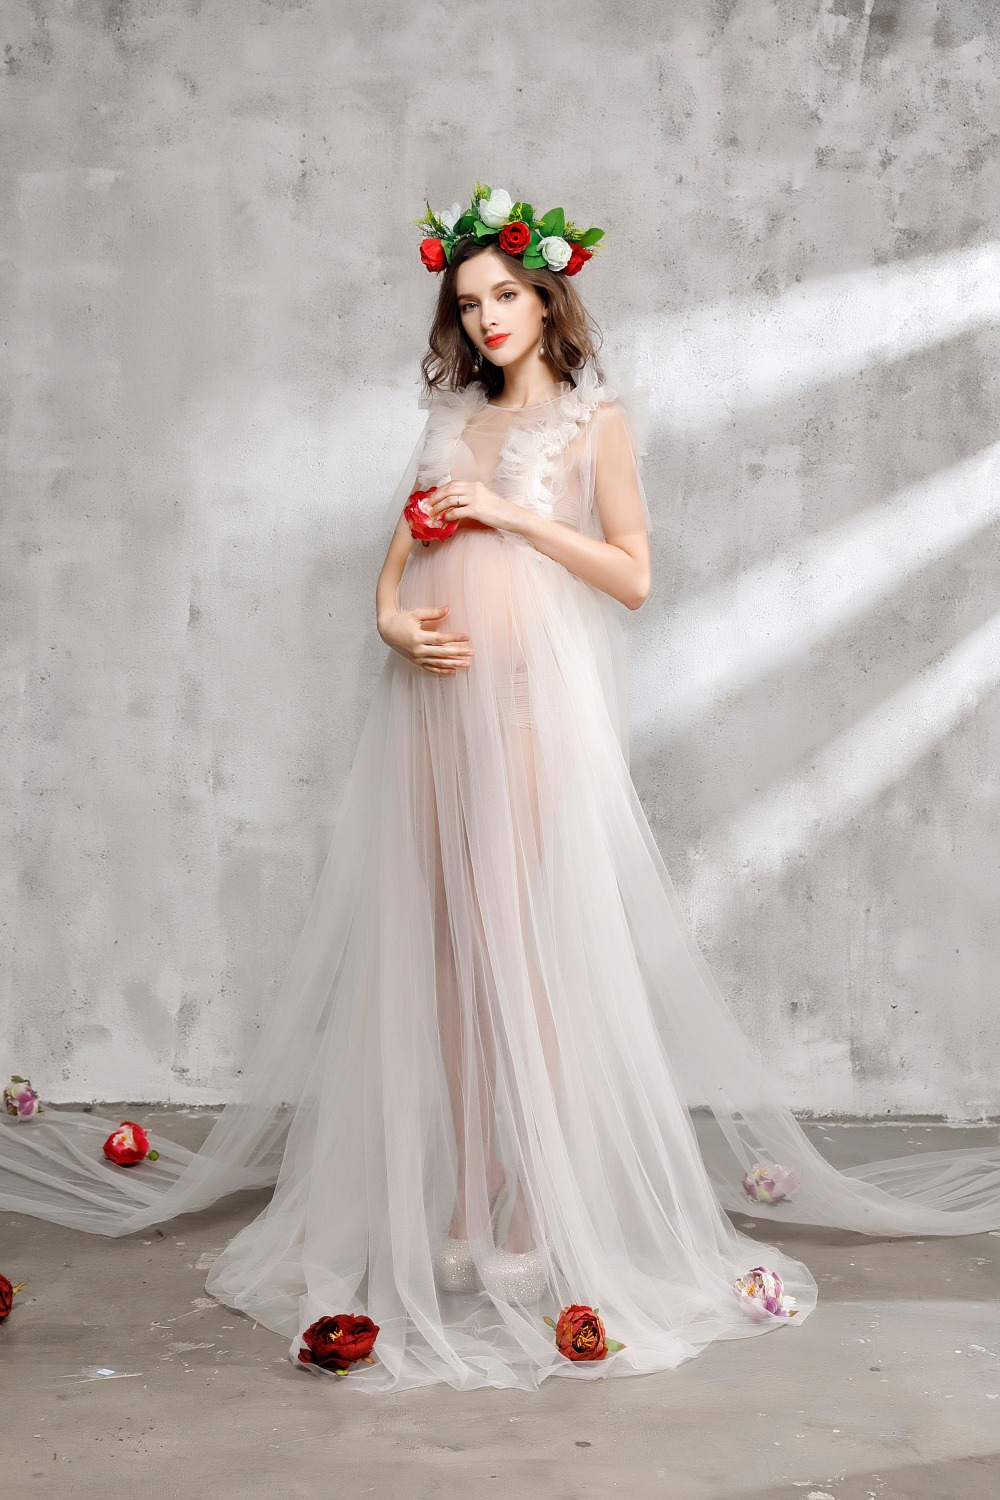 aternity photography dress gauzedress studio maternity photography